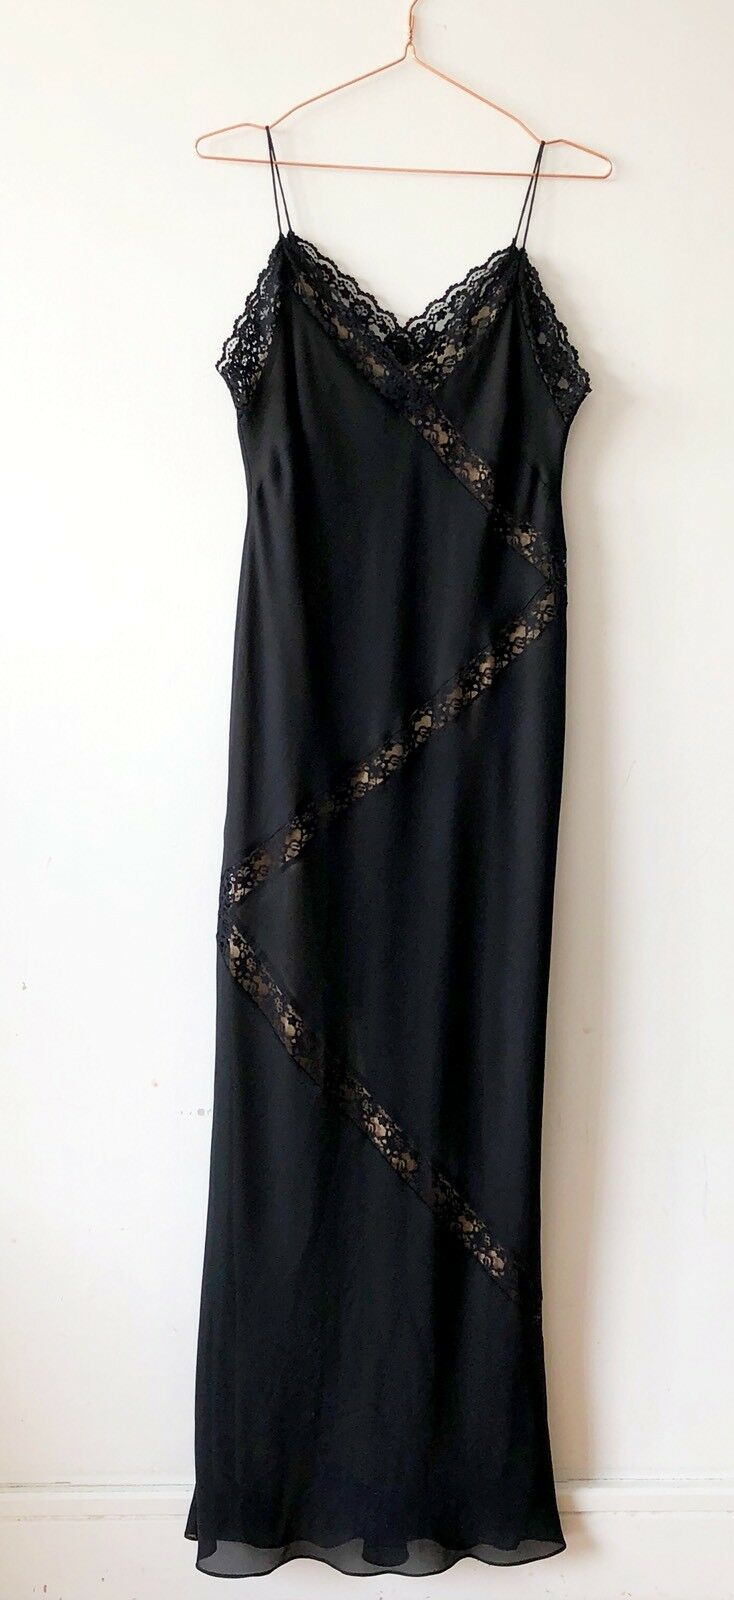 FRANK USHER Harrods schwarz Maxi Cami Strap Bodycon Lace Dress 10 Evening Sexy